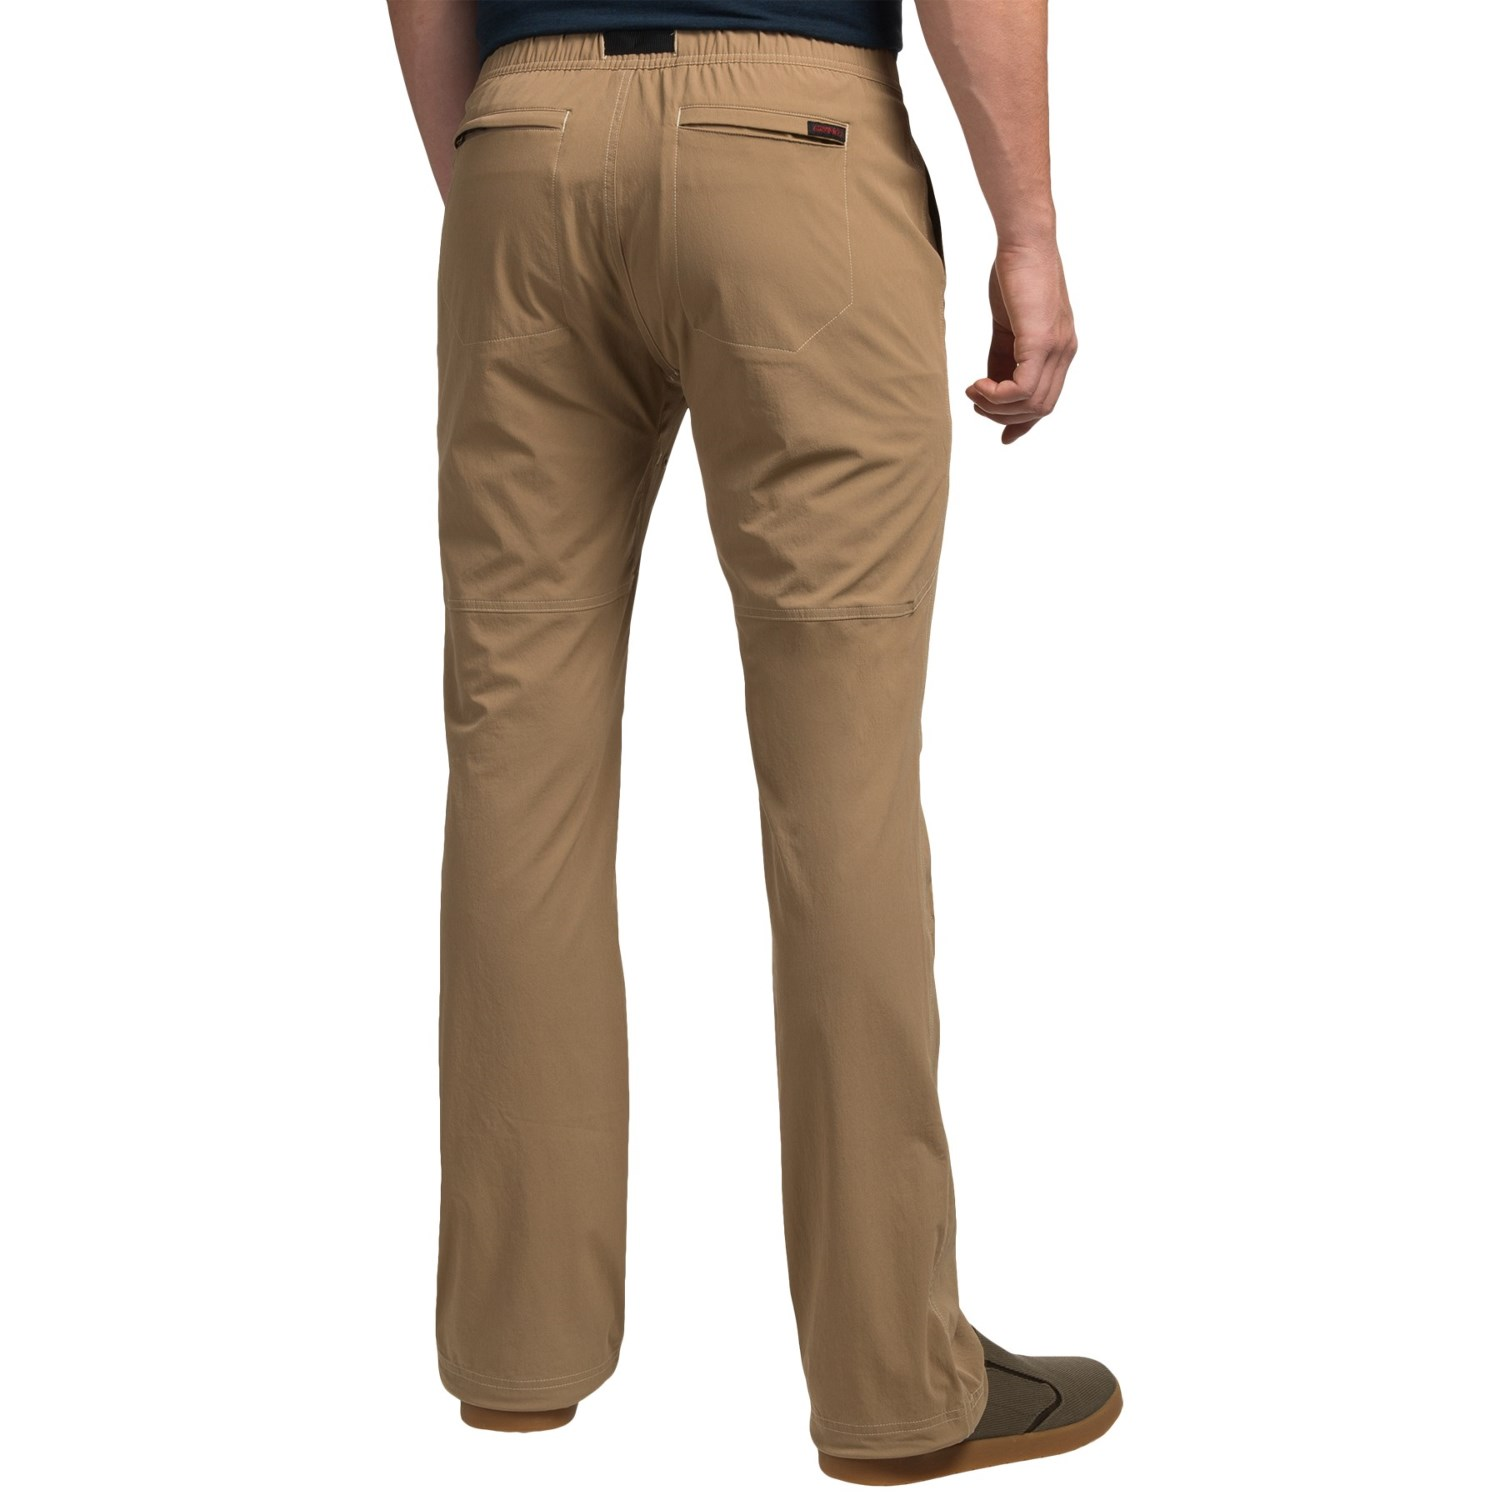 Free shipping BOTH ways on elastic waist pants for men, from our vast selection of styles. Fast delivery, and 24/7/ real-person service with a smile. Click or call